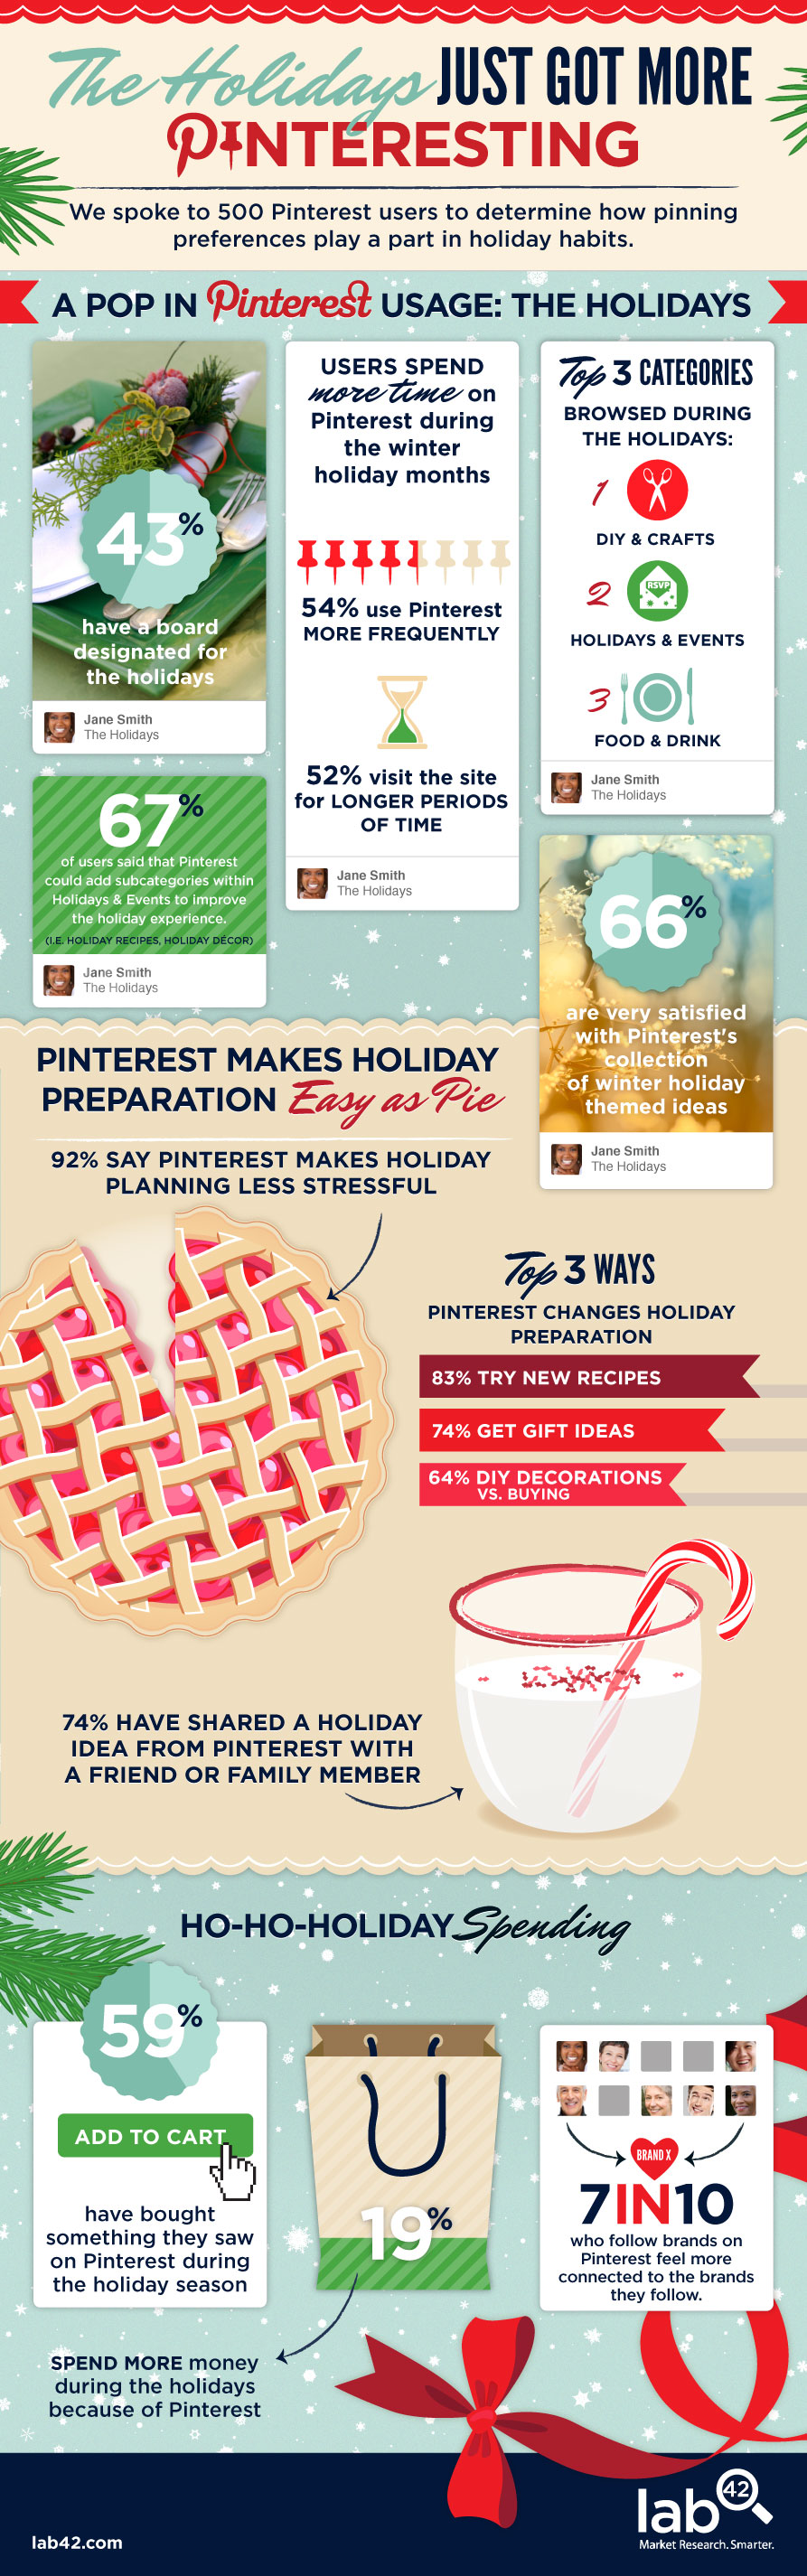 Pinterest Cheer during the Holiday Season